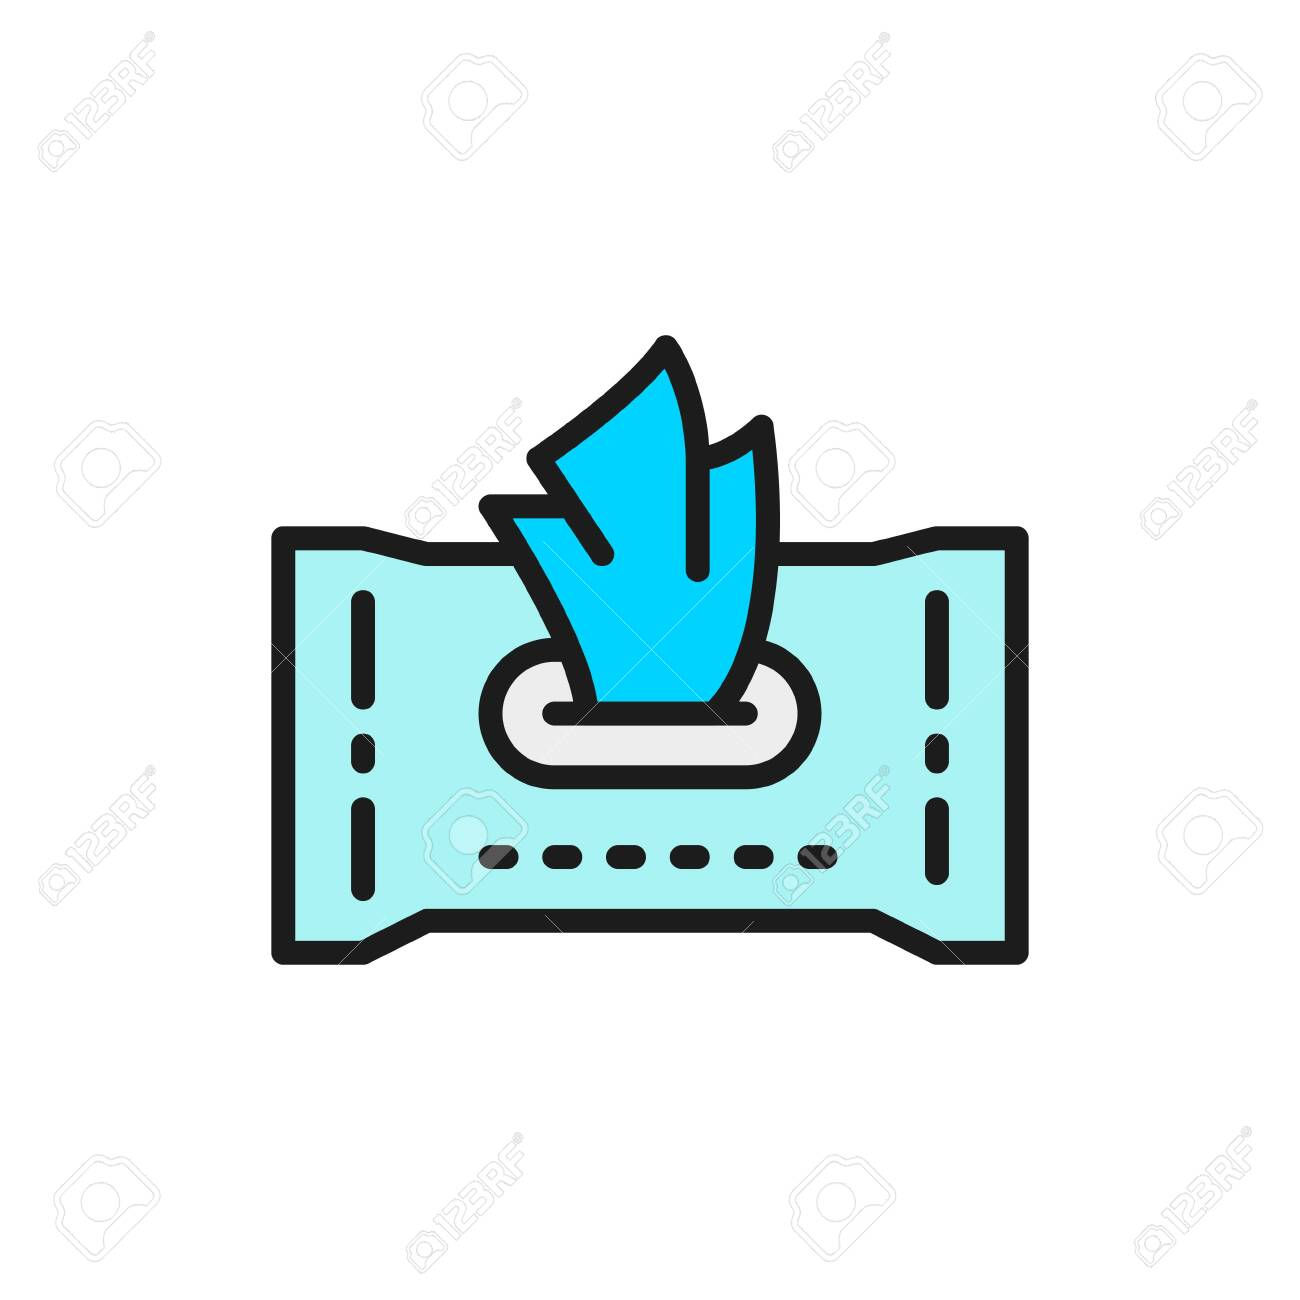 Paper wet wipes flat color line icon. - 144291332